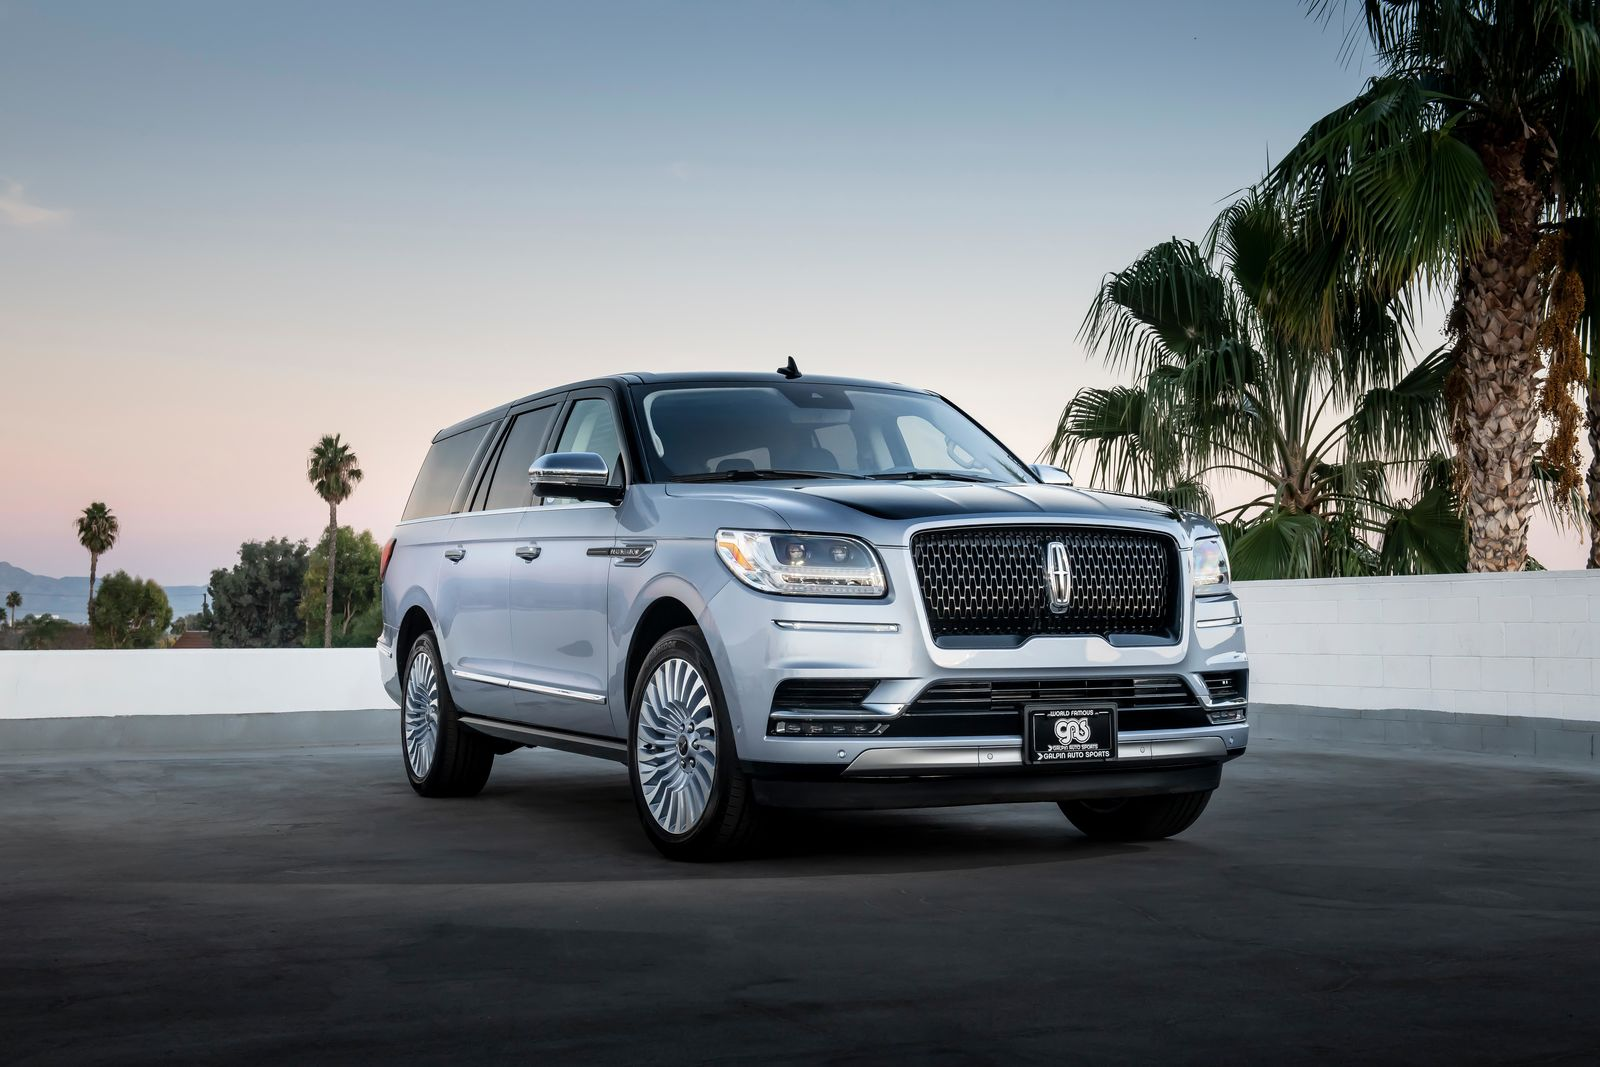 Long-wheelbase Lincoln Black Label Navigator was specially ordered and customized for celebrity car enthusiast Jay Leno and debuted at Jay's Garage Stand at 2018 SEMA{ } (Photo: Lincoln)